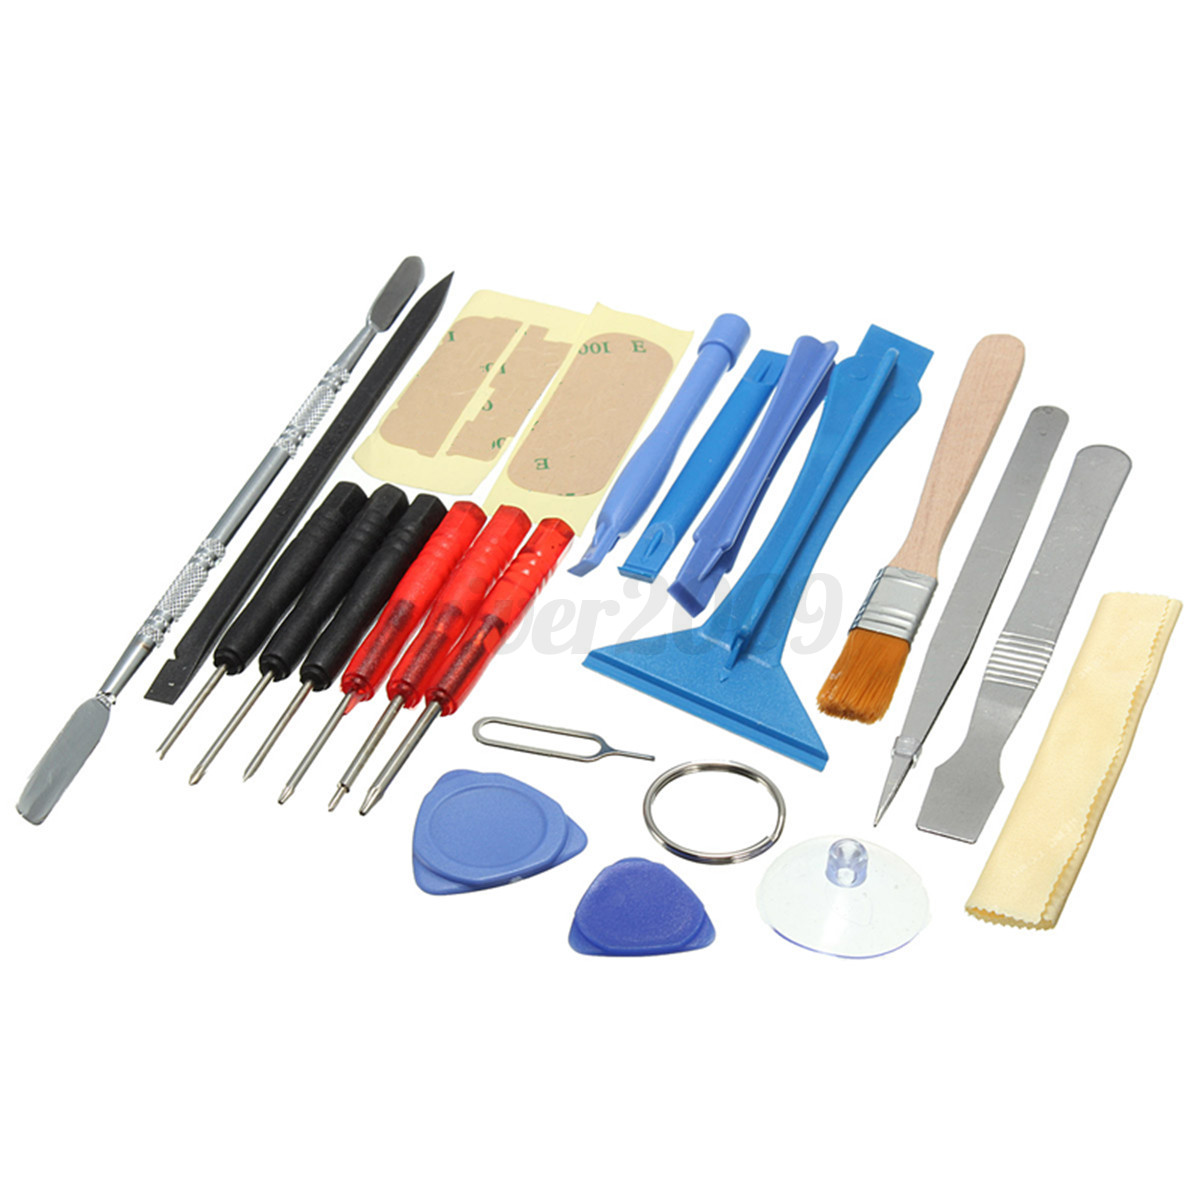 22 in 1 repair screwdriver spudger open pry tools set for iphone 6s 6 plus 5s. Black Bedroom Furniture Sets. Home Design Ideas